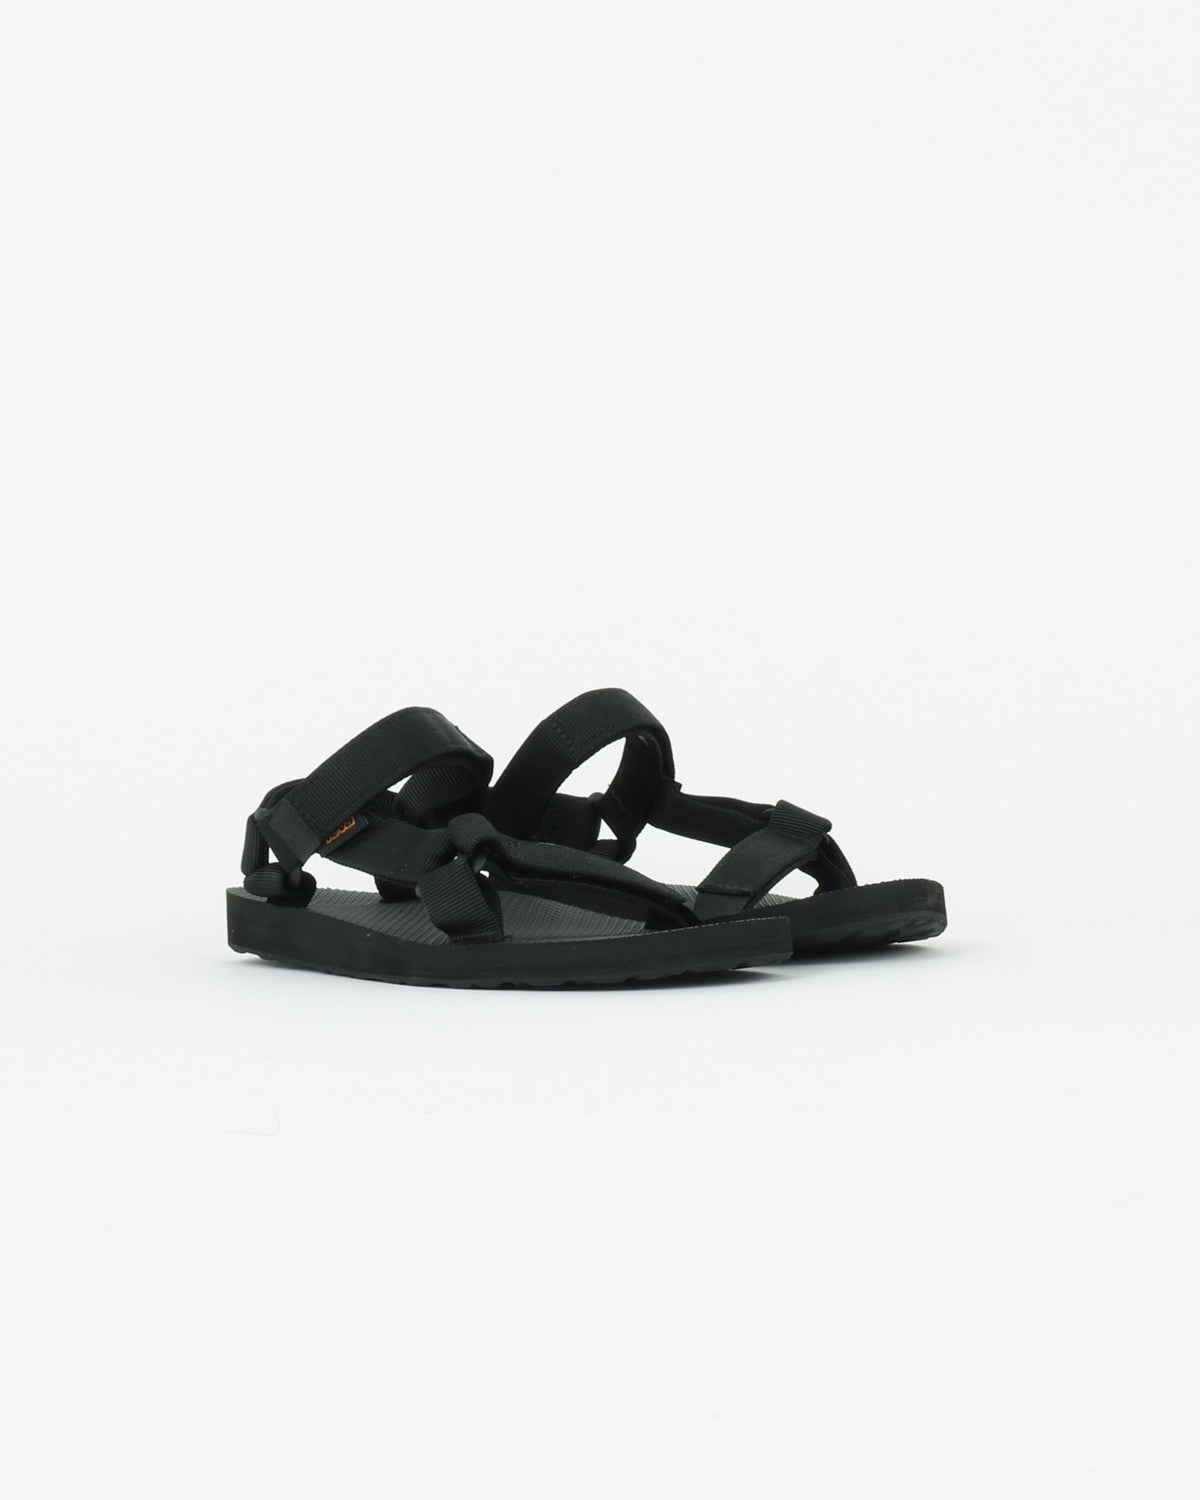 teva_original universal_black_wmn_view_2_3